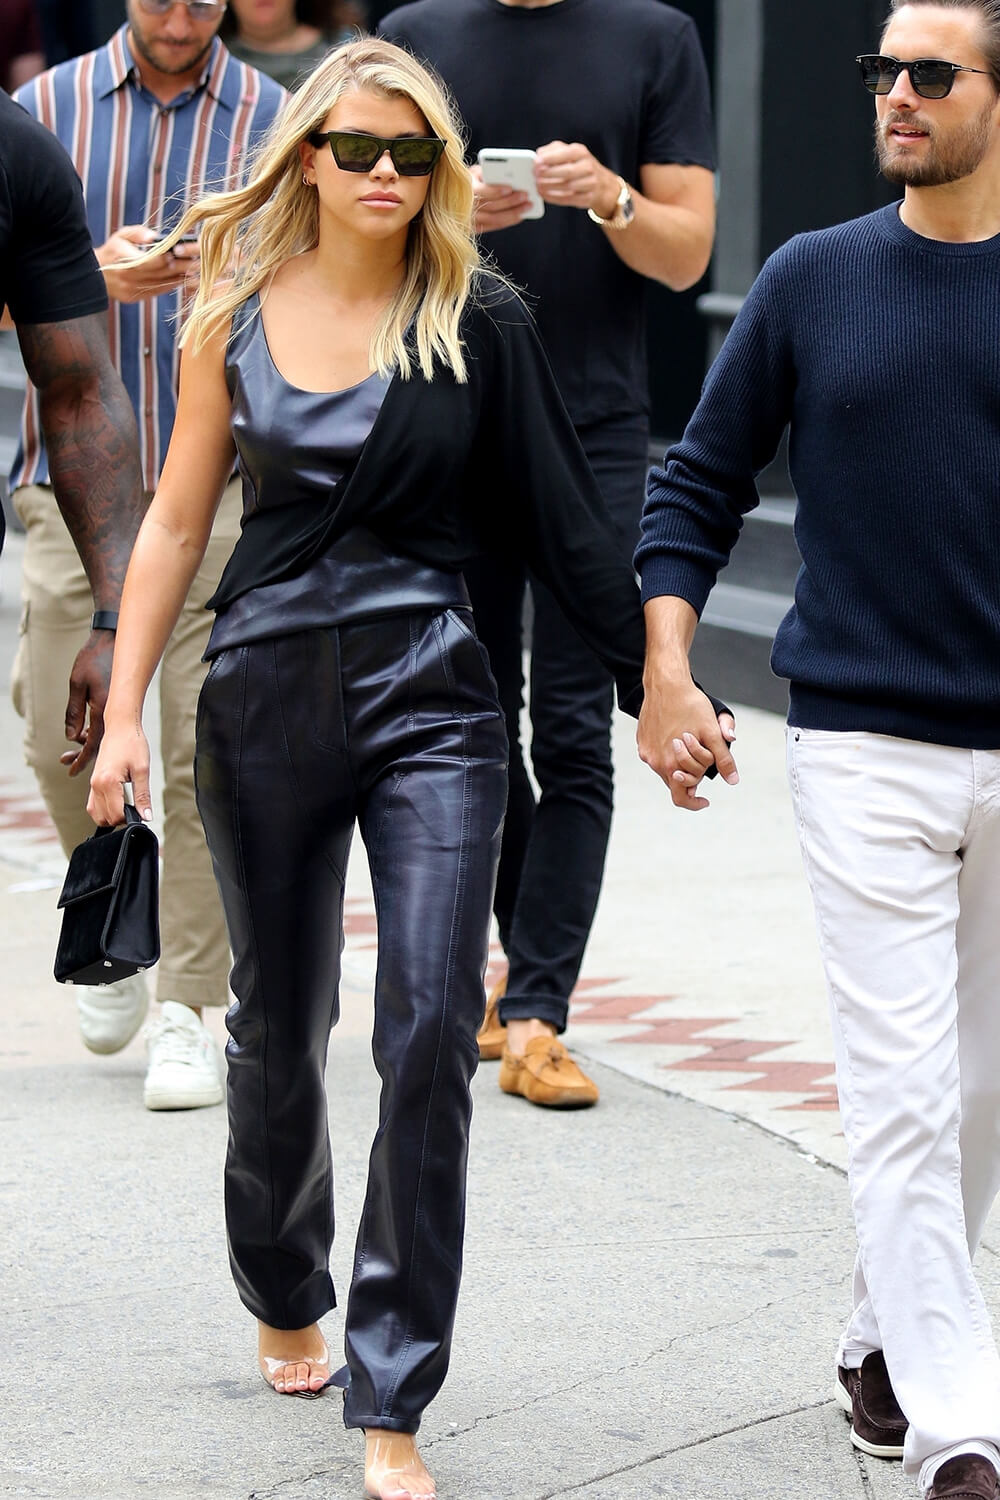 Sofia Richie shopping in Manhattan's Soho